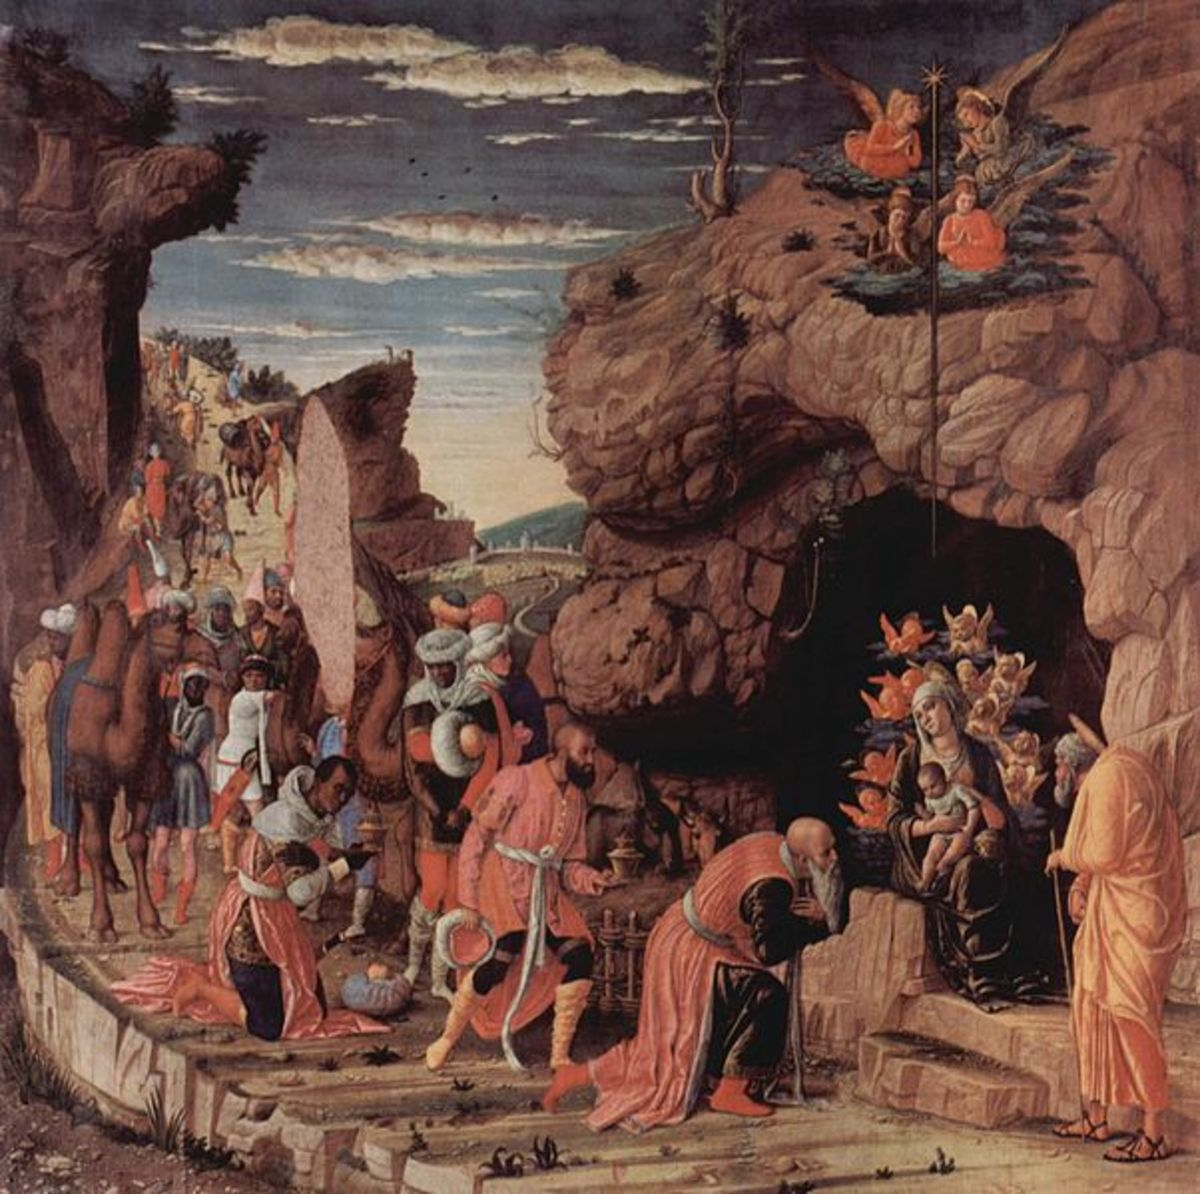 Andrea Mantegna, Adoration of the Magi (1461), Florence Galleria degli Uffizi